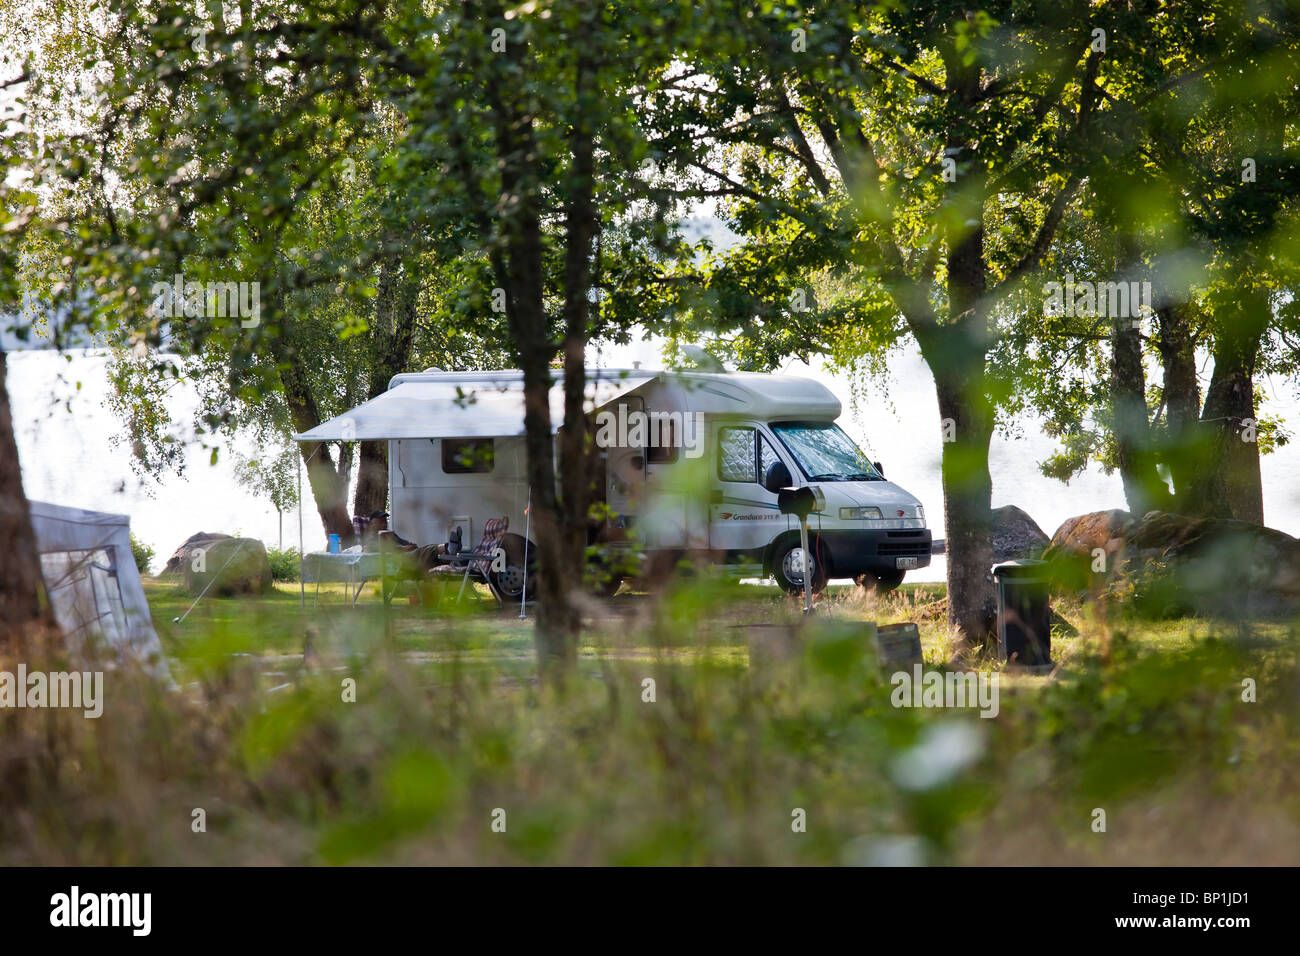 A camper parked at a lake, a man is sitting in the shadows relaxing - Stock Image